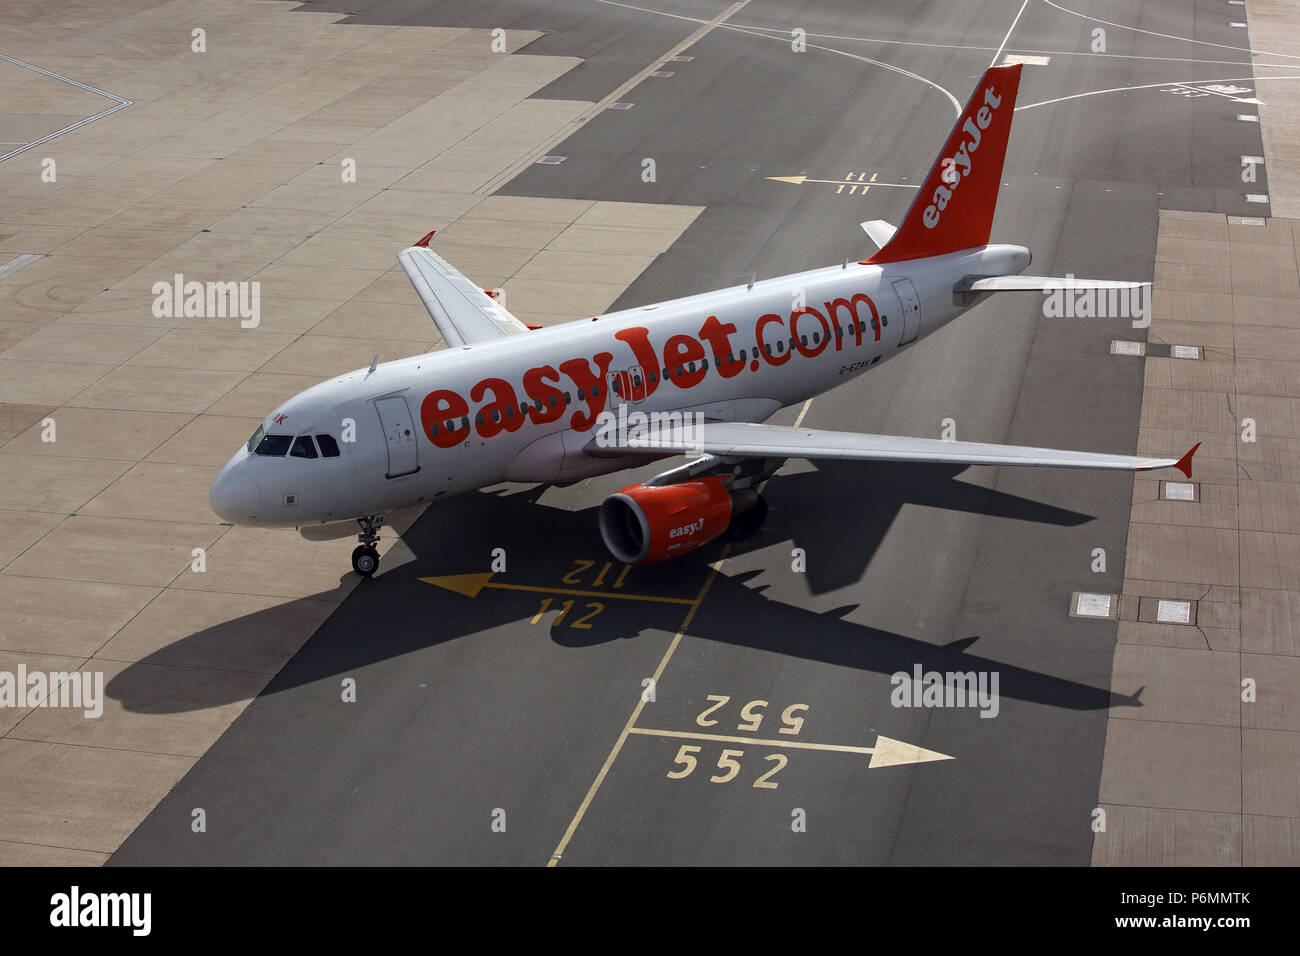 London, United Kingdom, Airbus A 319 of the airline easyJet on the taxiway of London Gatwick Airport - Stock Image